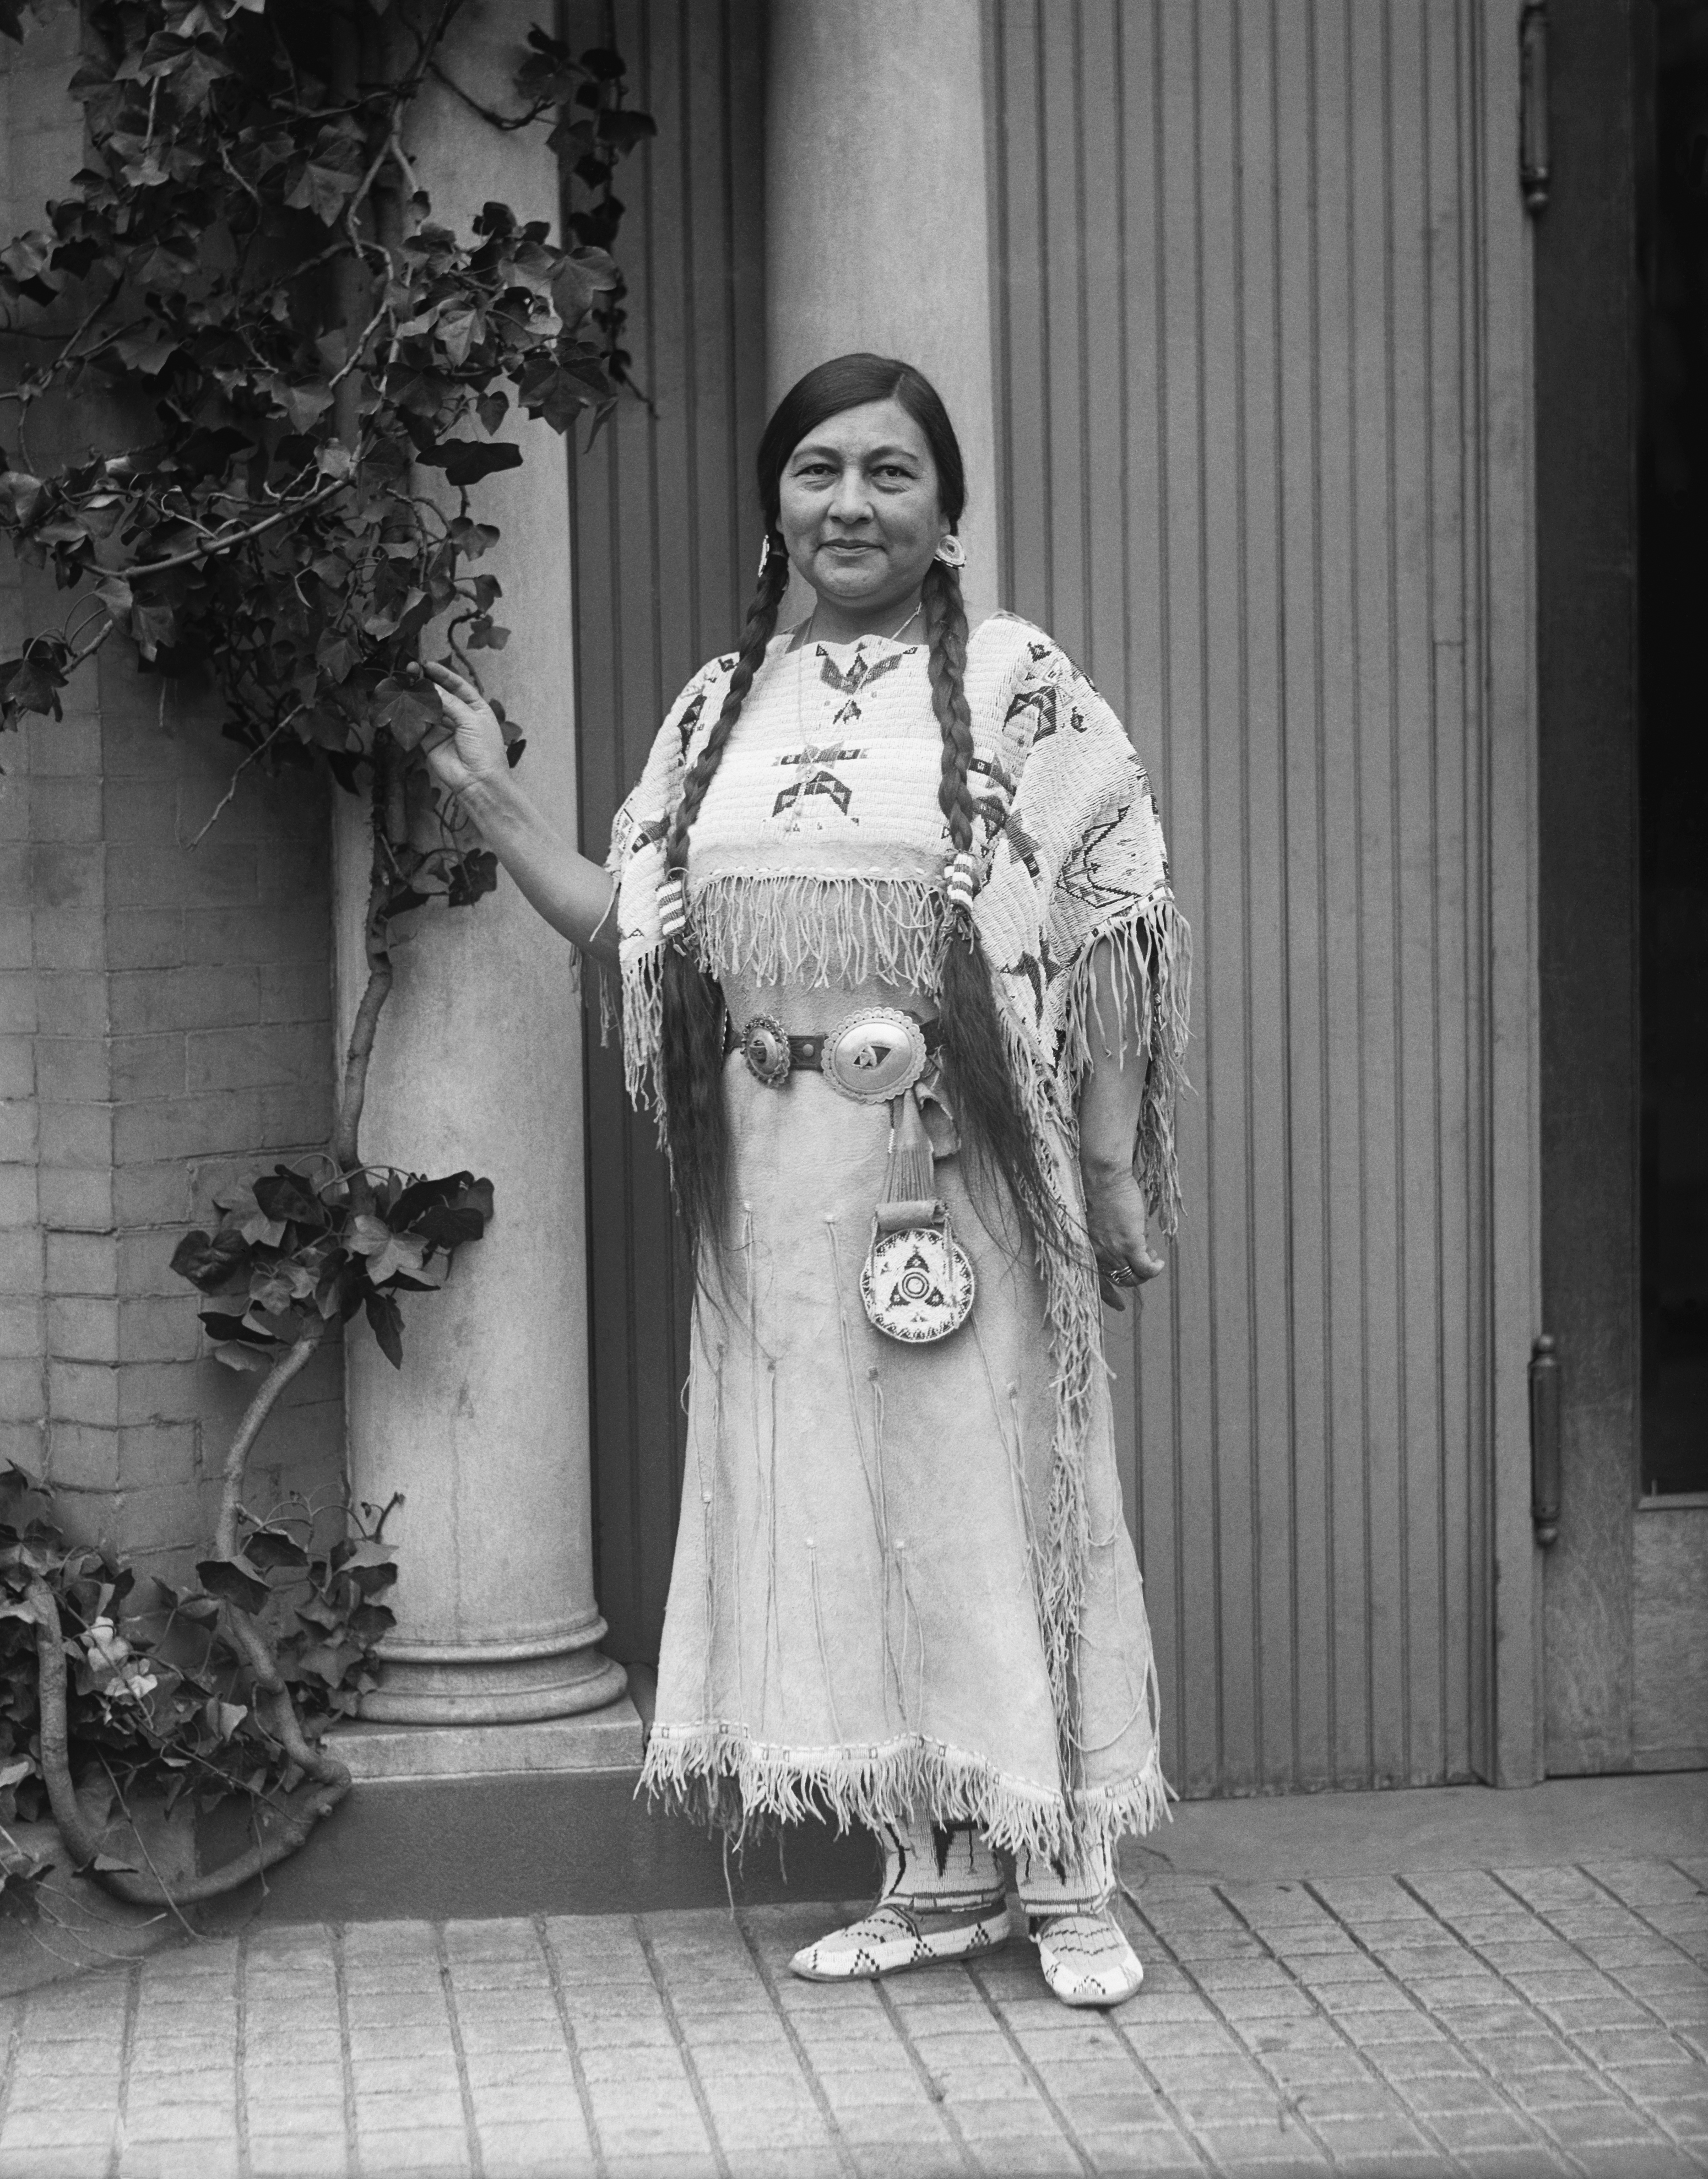 Voting rights activist Gertrude Simmons Bonnin (Zitkala-Sa) of the Yankton Sioux Nation was prominent in the women's suffrage community. (Bettmann Archive/Getty Images)